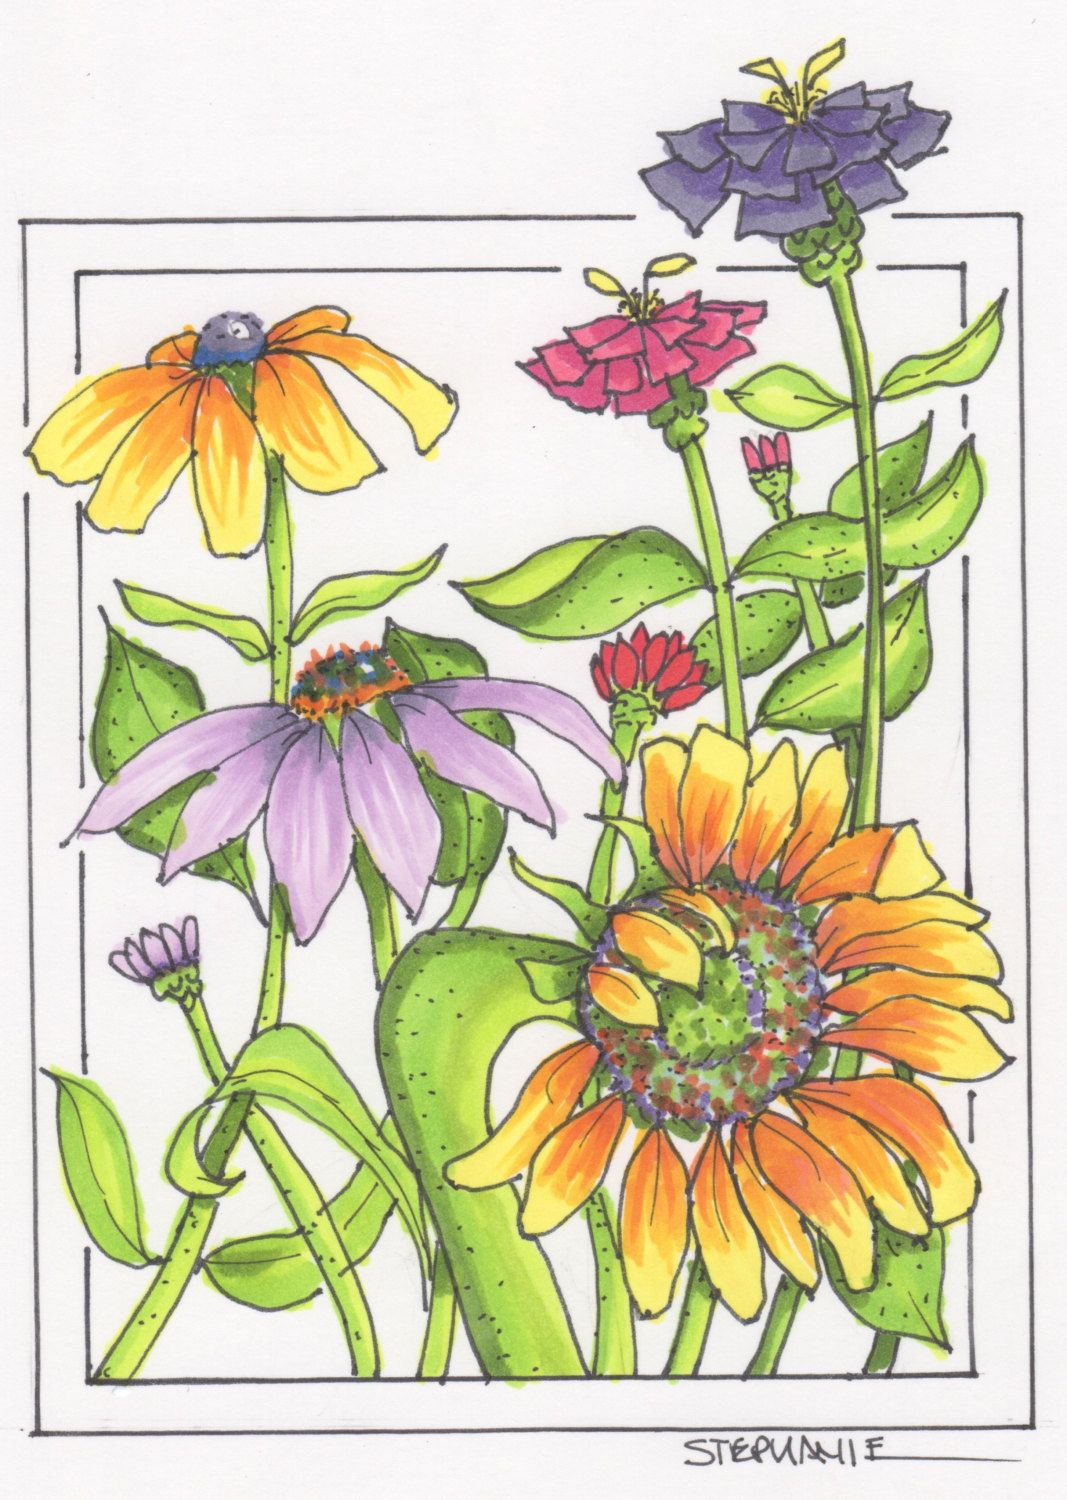 Copic coloring sunflower and purple cone flower part art print by